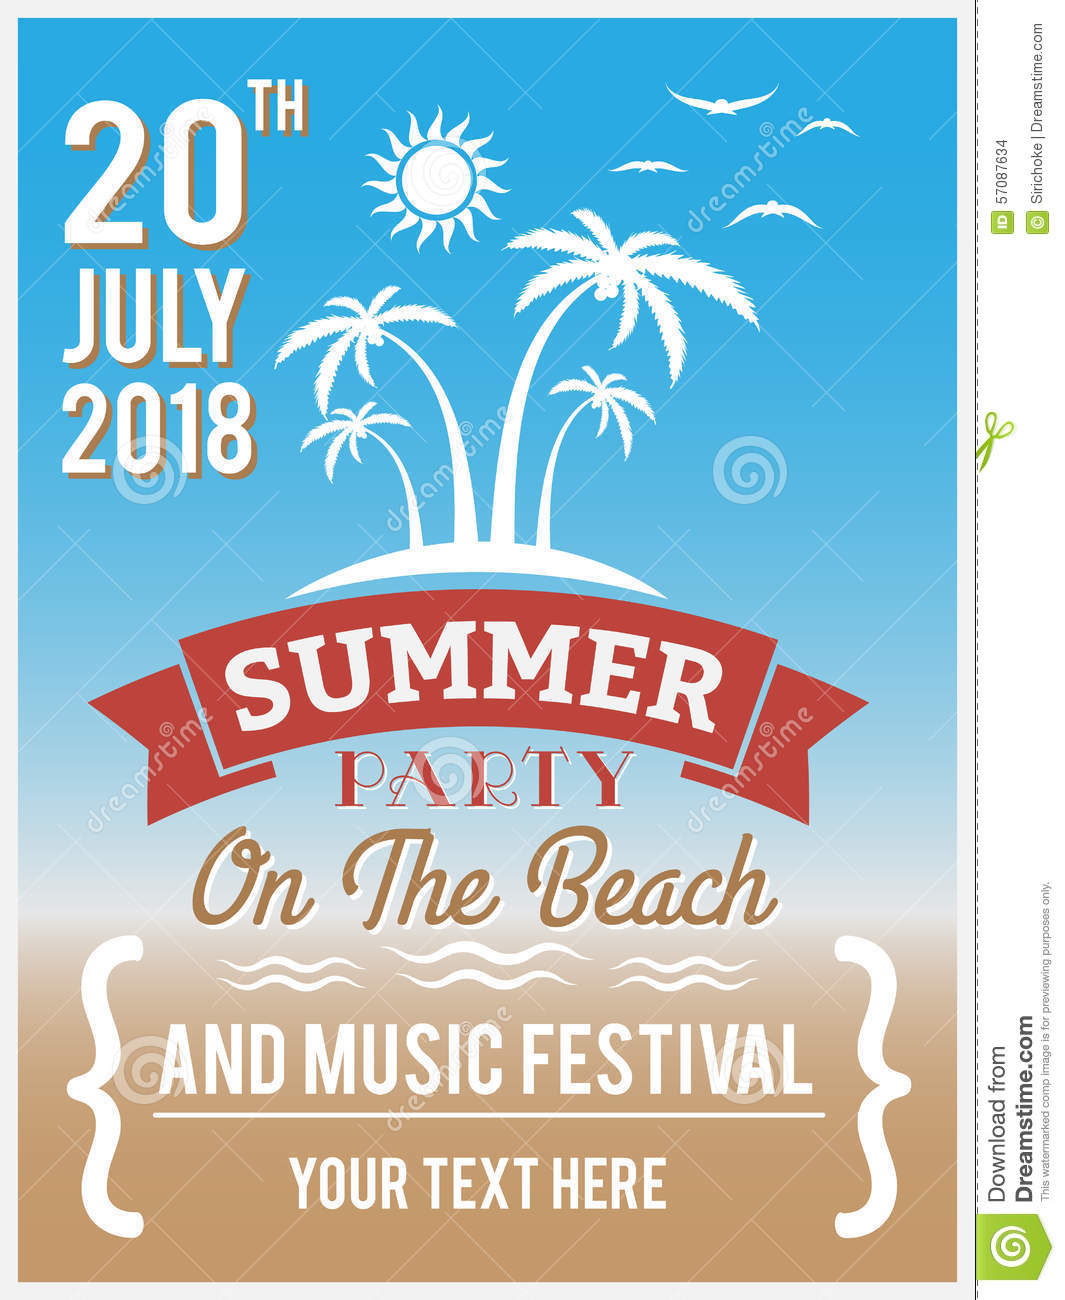 summer party on the beach design for poster flyer stock vector summer party on the beach design for poster flyer